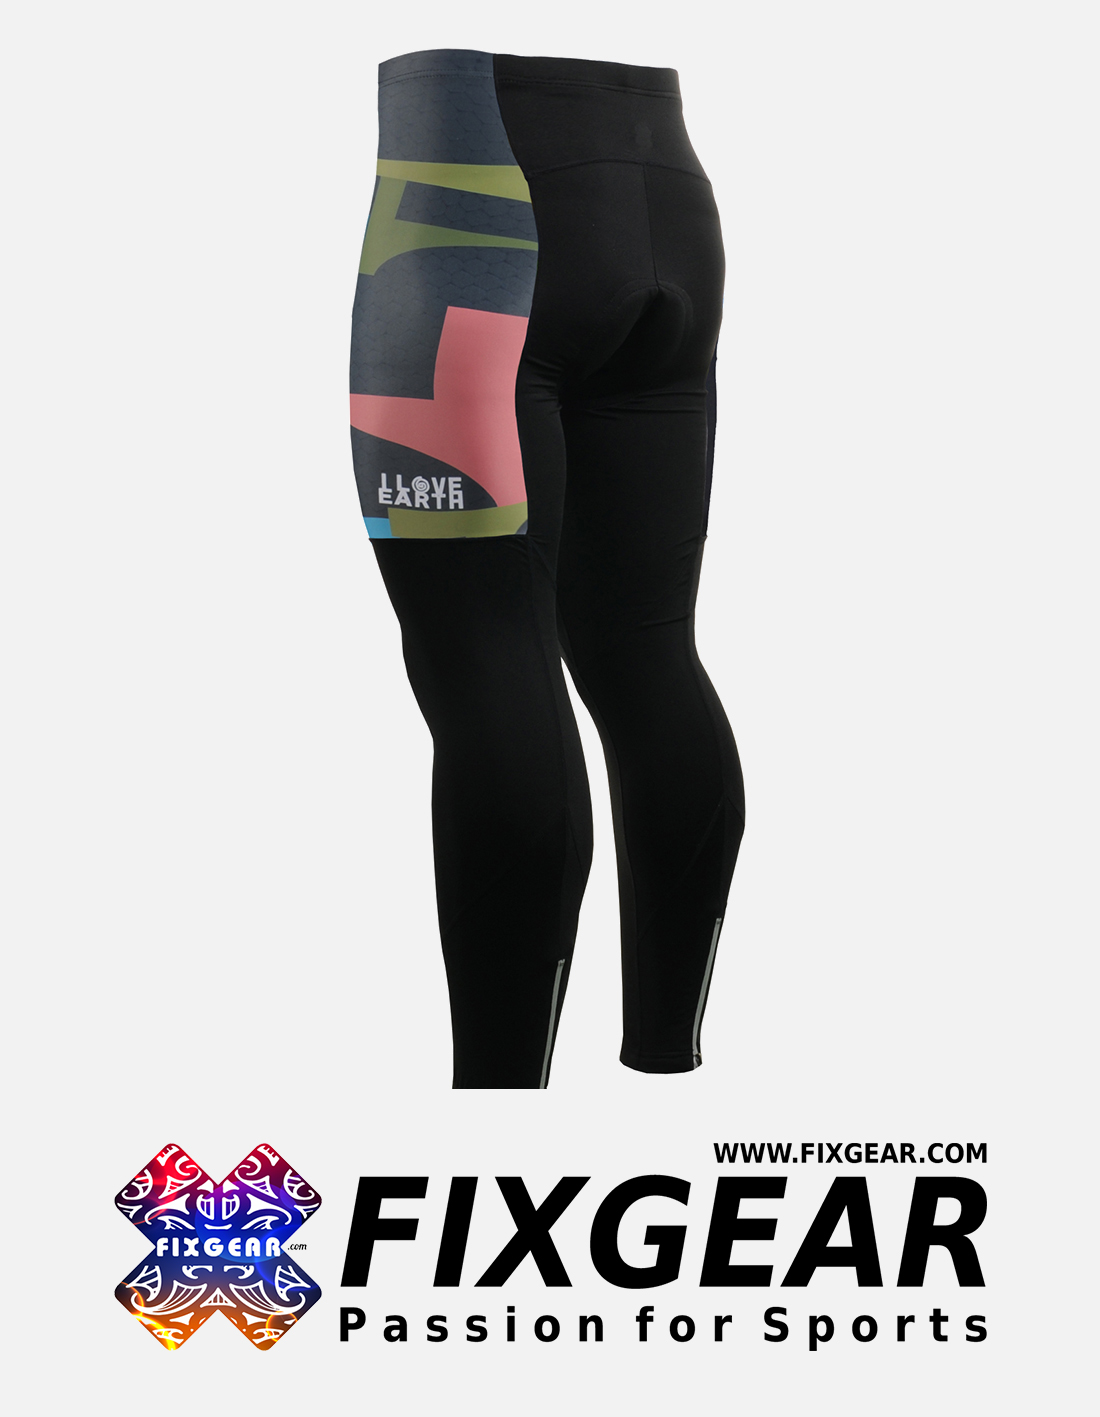 FIXGEAR LT-34K Men's Cycling Cycling Padded Pants